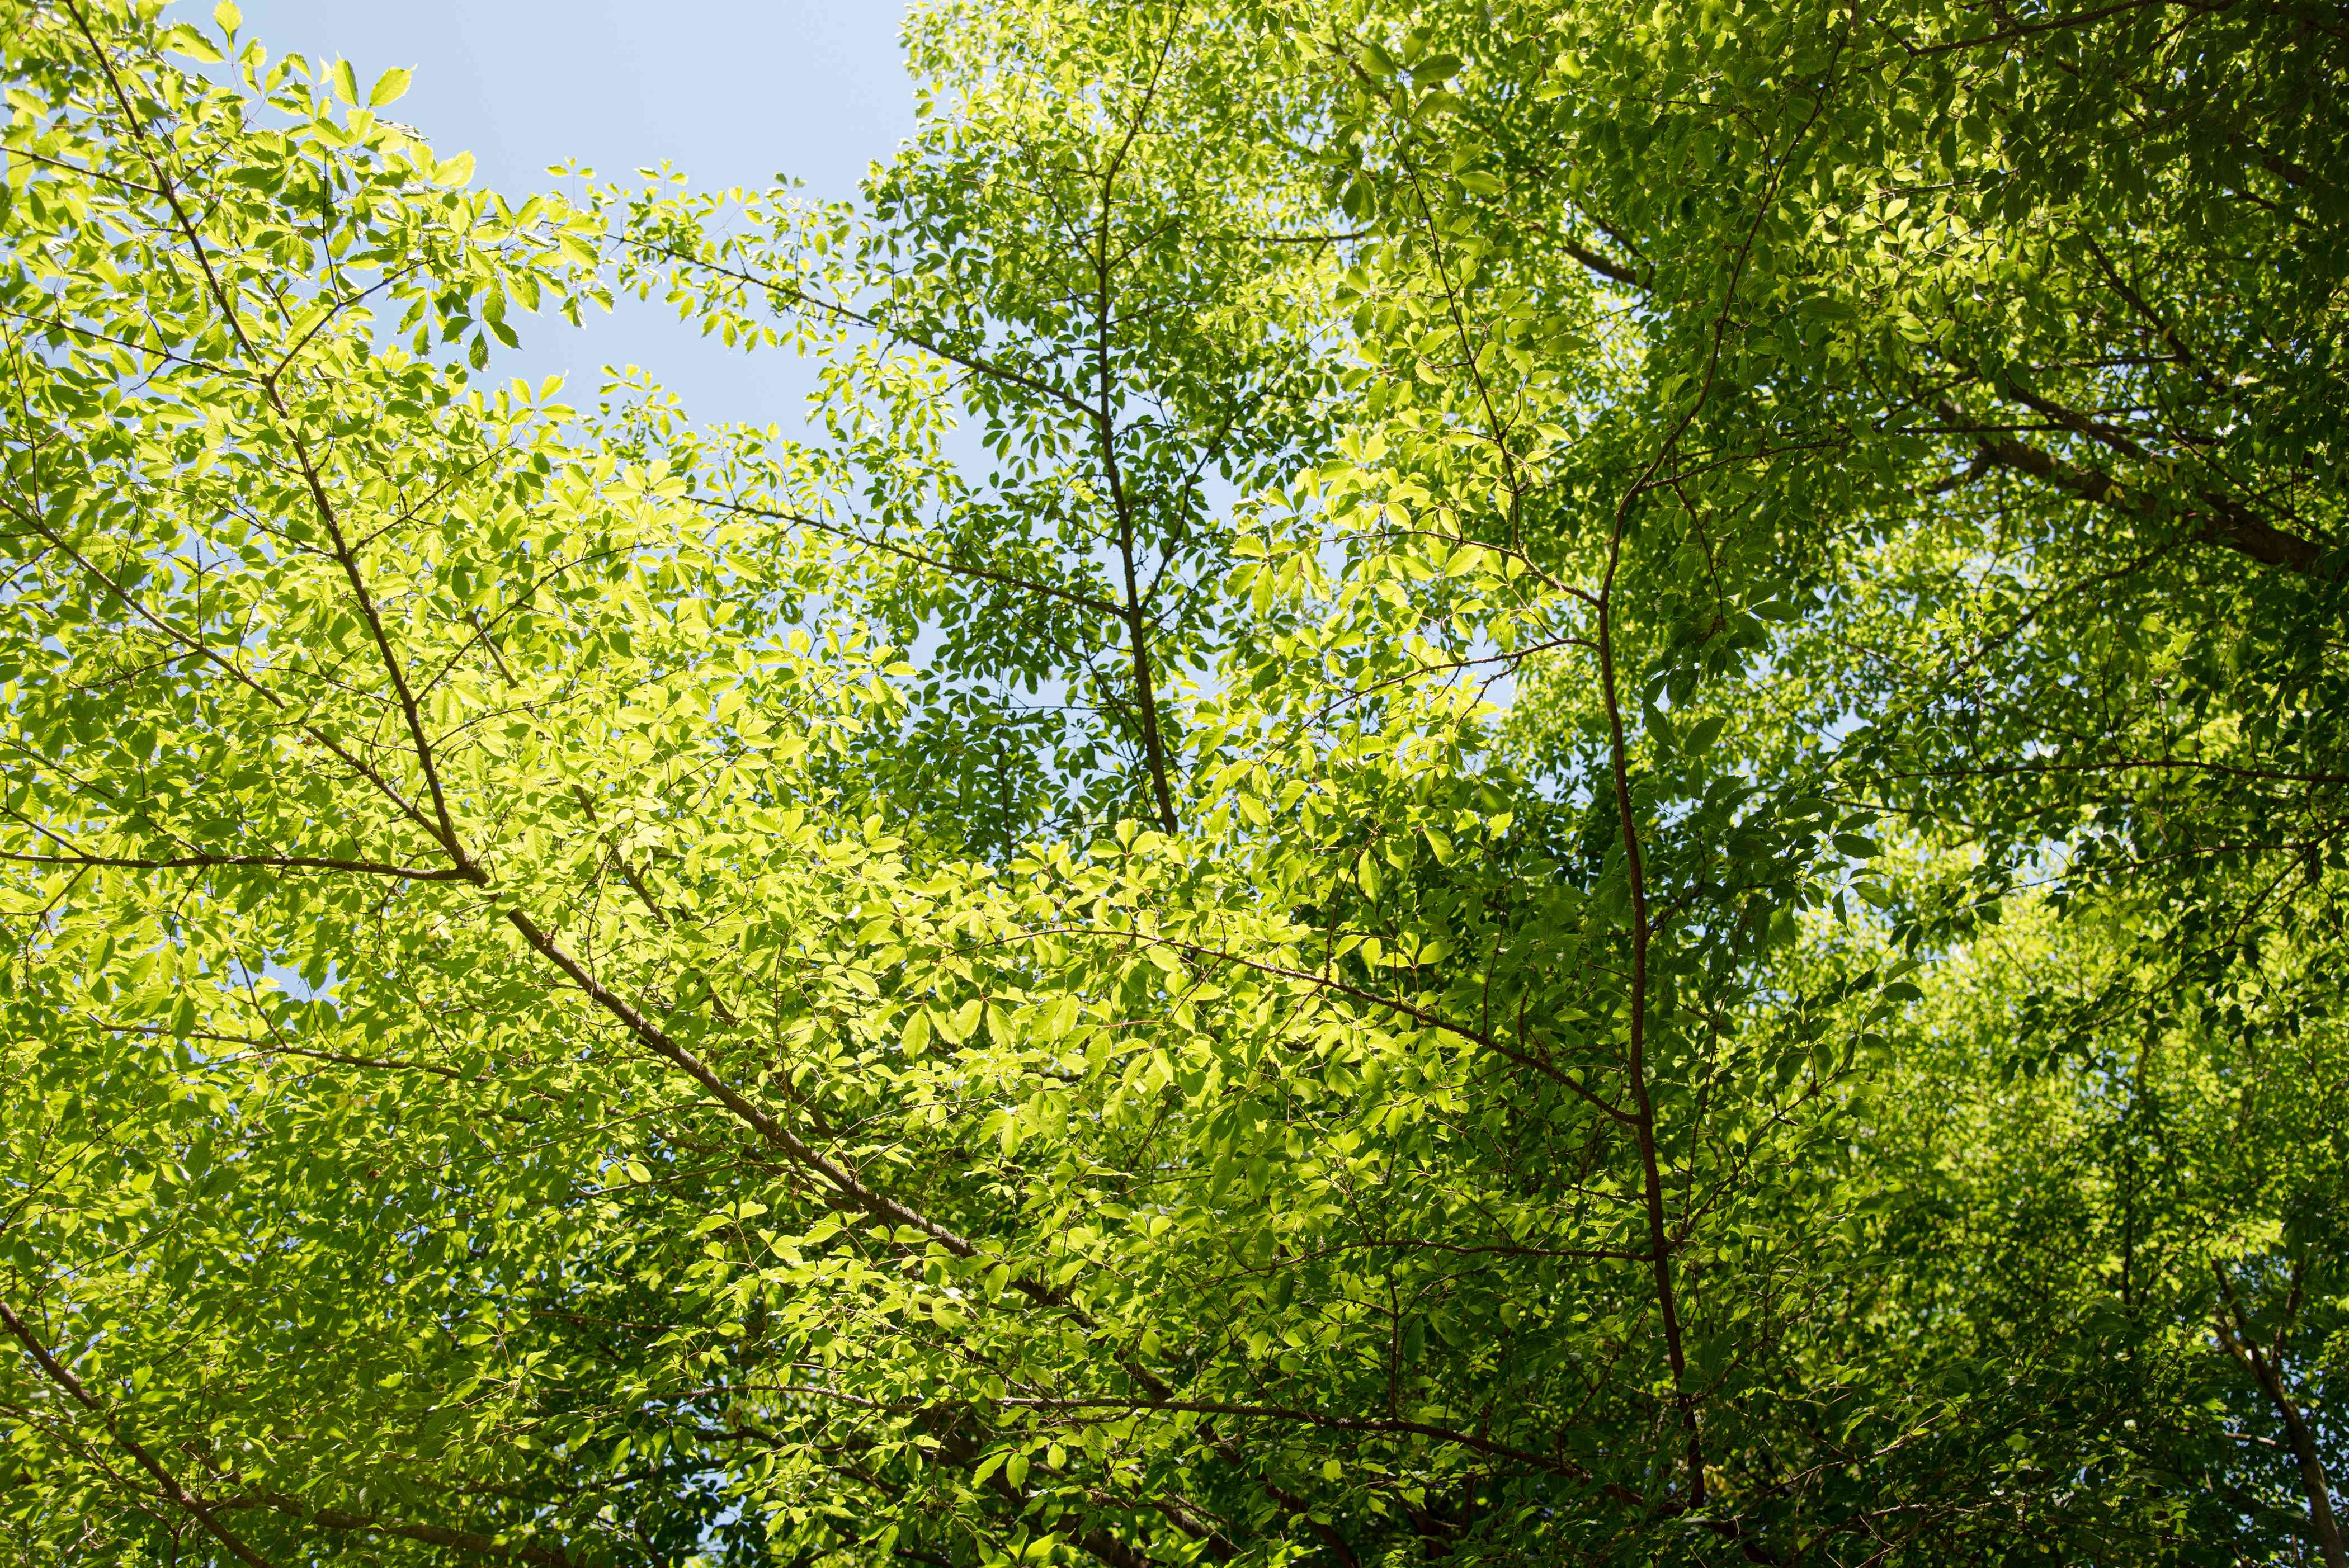 Vine leaf maple tree branches with bright green trifoliate leaves in sunlight